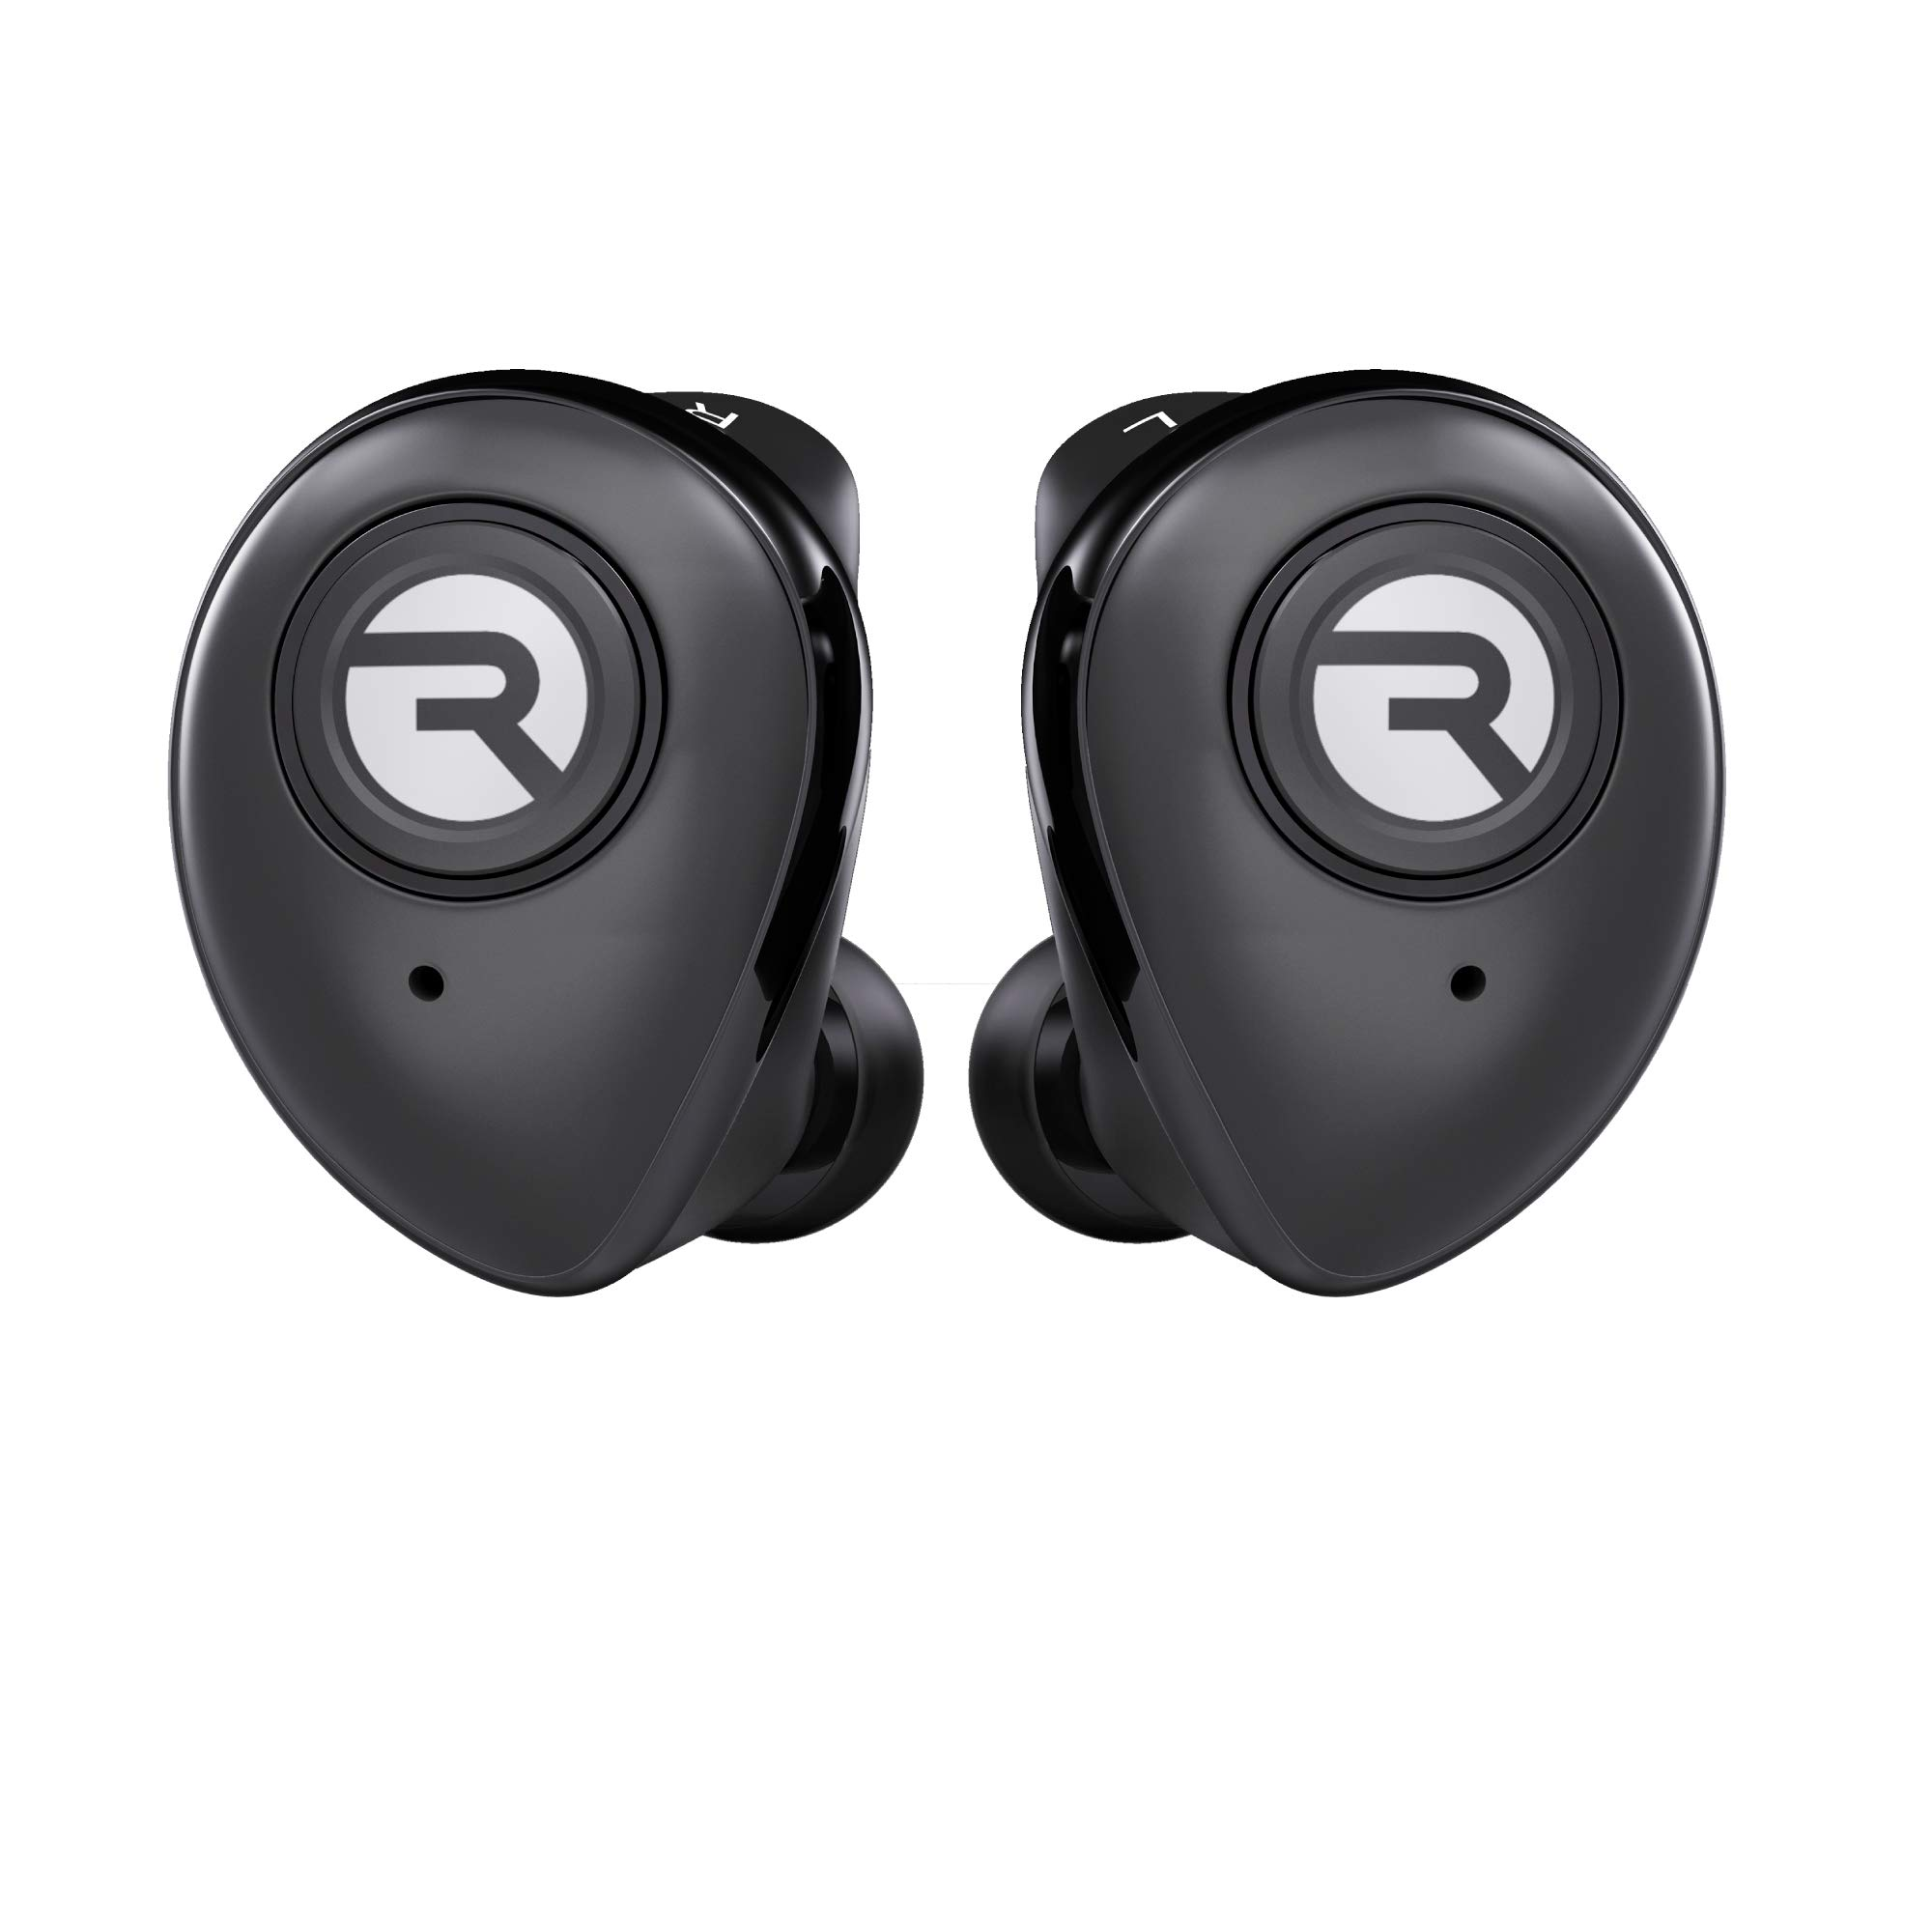 Raycon E50 True Wireless Bluetooth Headphones - Bluetooth Earbuds Bluetooth 5.0 Stereo Sound in-Ear Bluetooth Headset Wireless Earbuds 25 Hours Playtime and Built-in Microphone Black